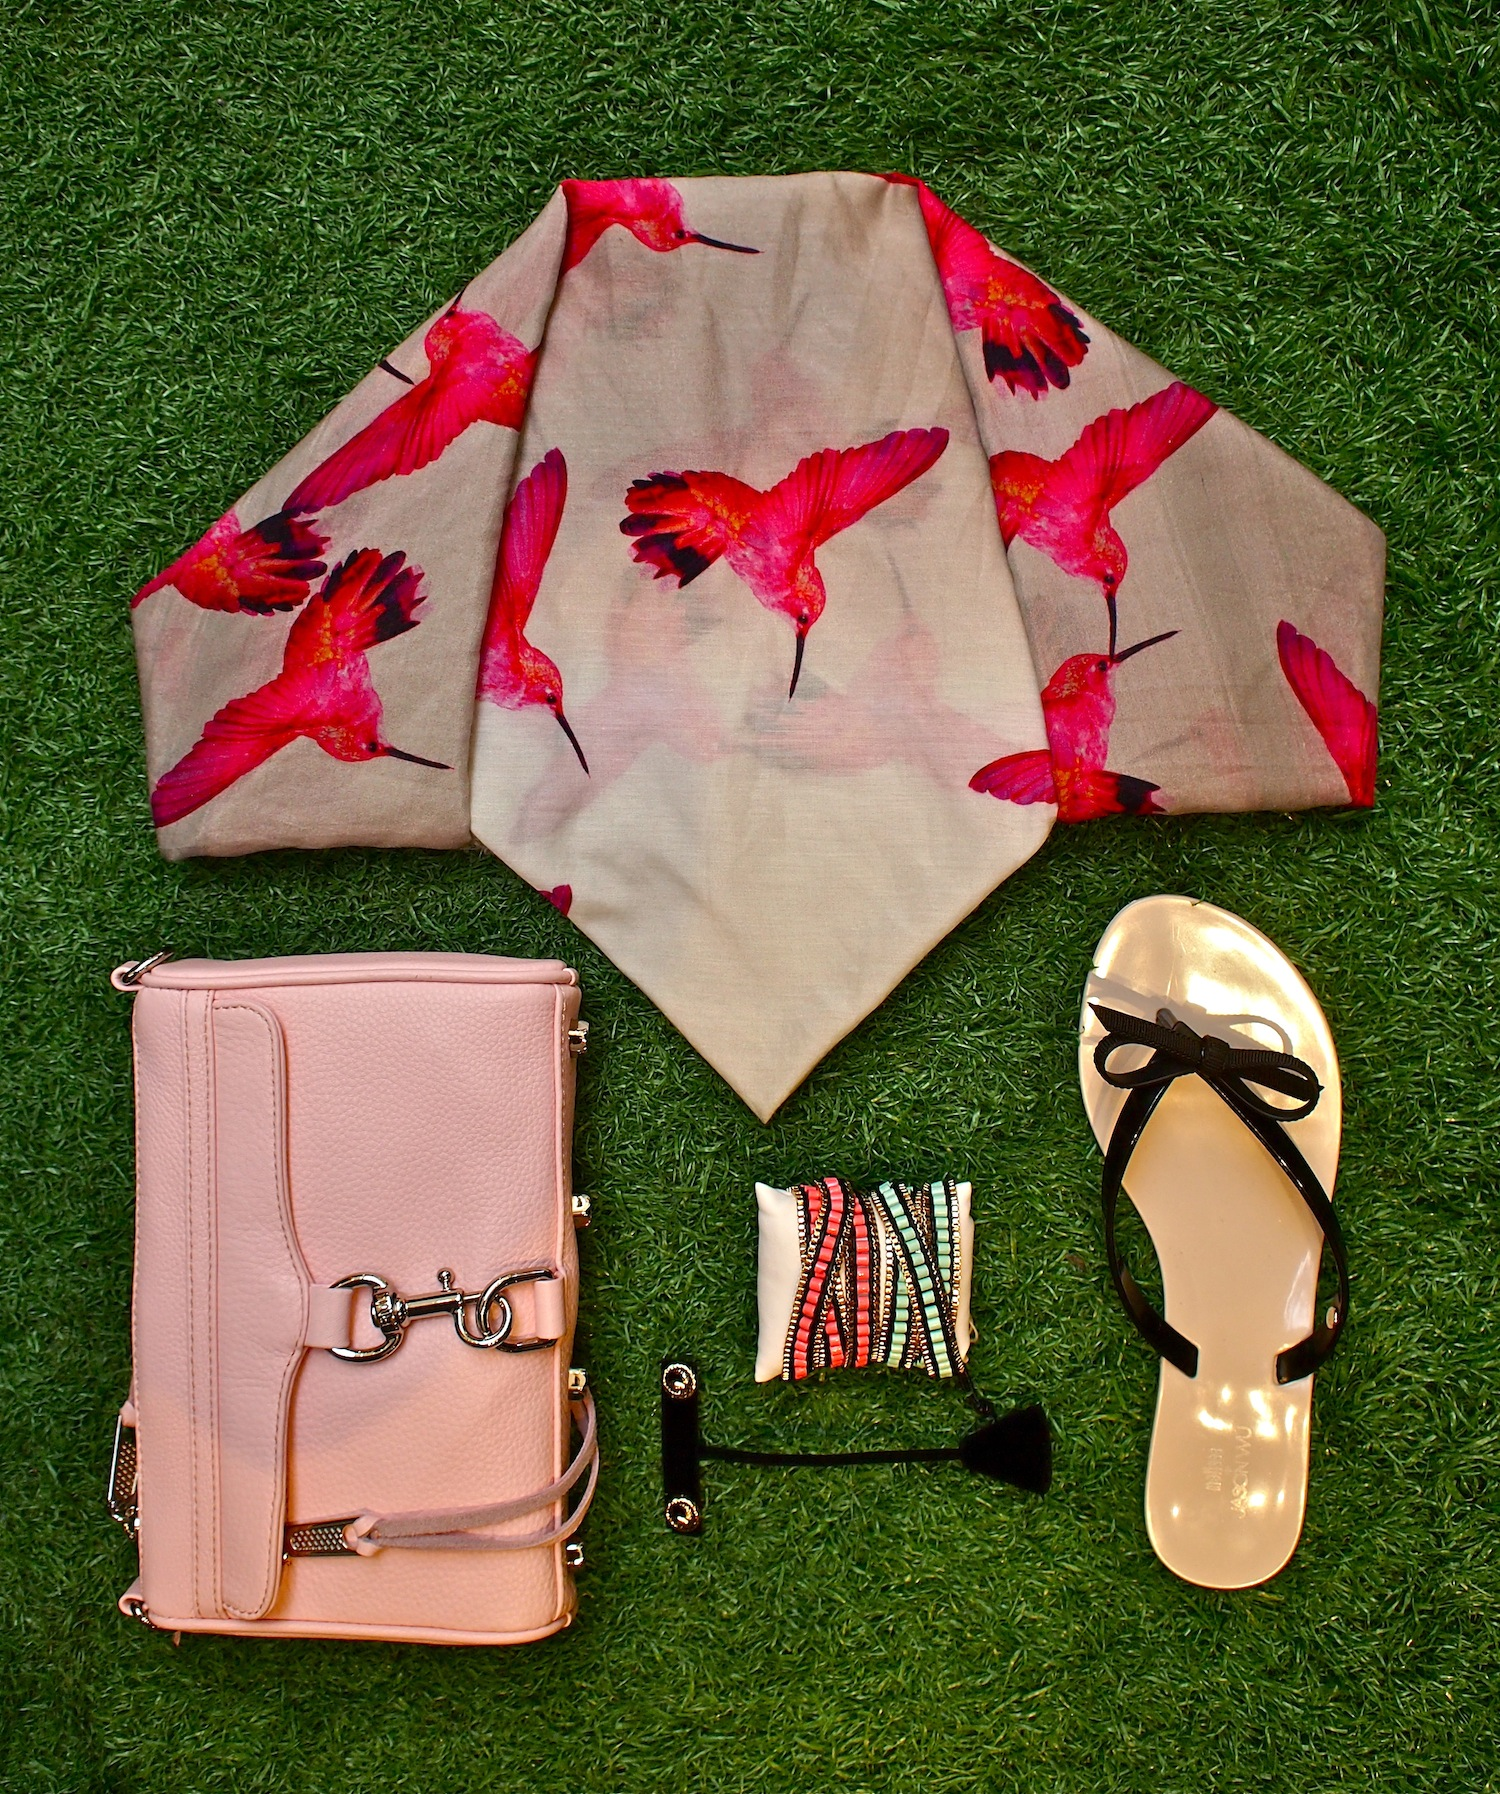 Melissa + Jason Wu Harmonic sandal with bow $78, Leigh & Luca Digital Hummingbirds scarf $259, Rebecca Minkoff Mini MAC $225, Jenny Bird Gypset triple wrap $85, Jenny Bird Serpent studs $40.